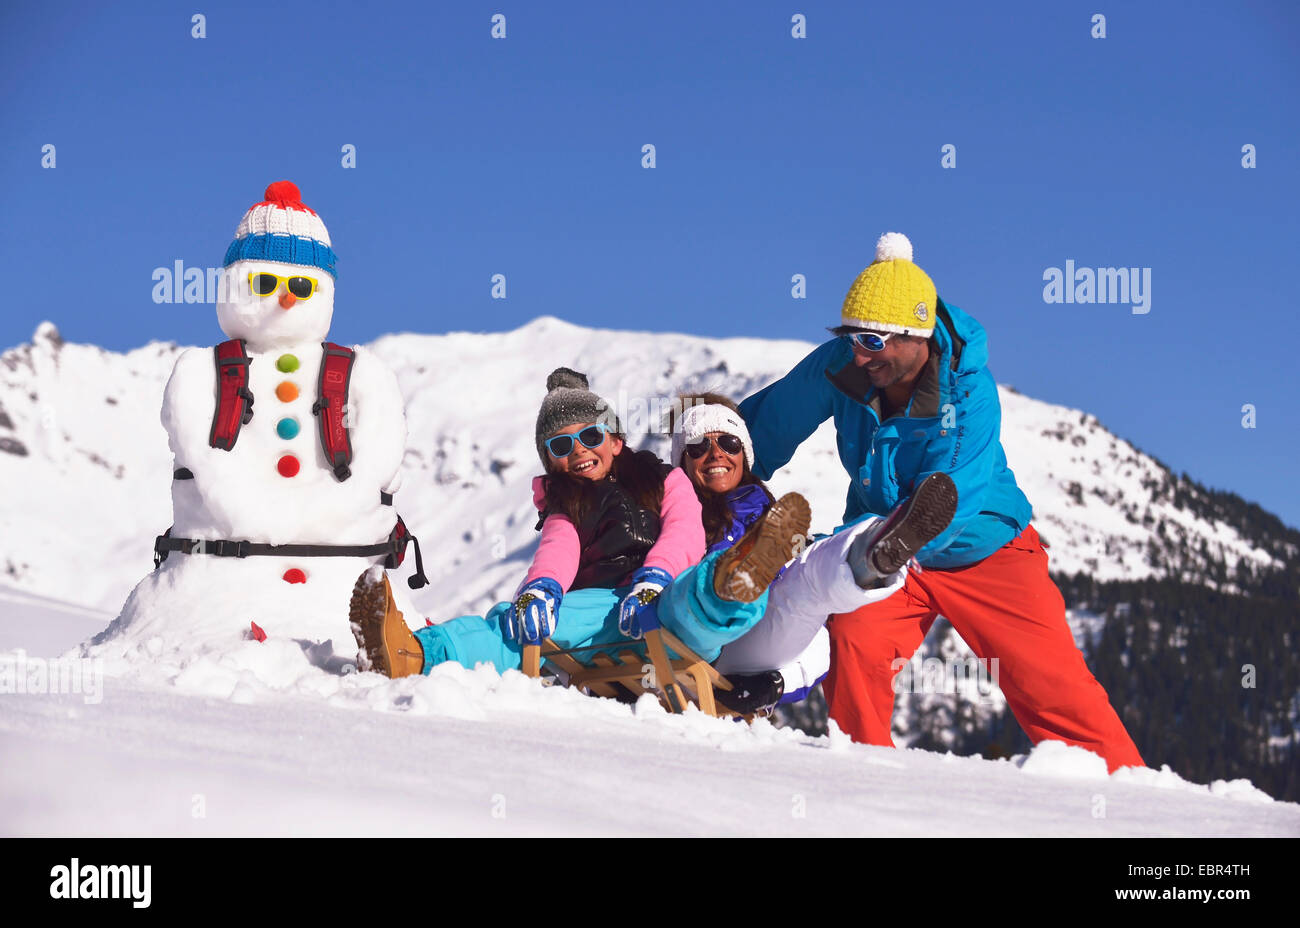 Famille à sports d'hiver, France Photo Stock